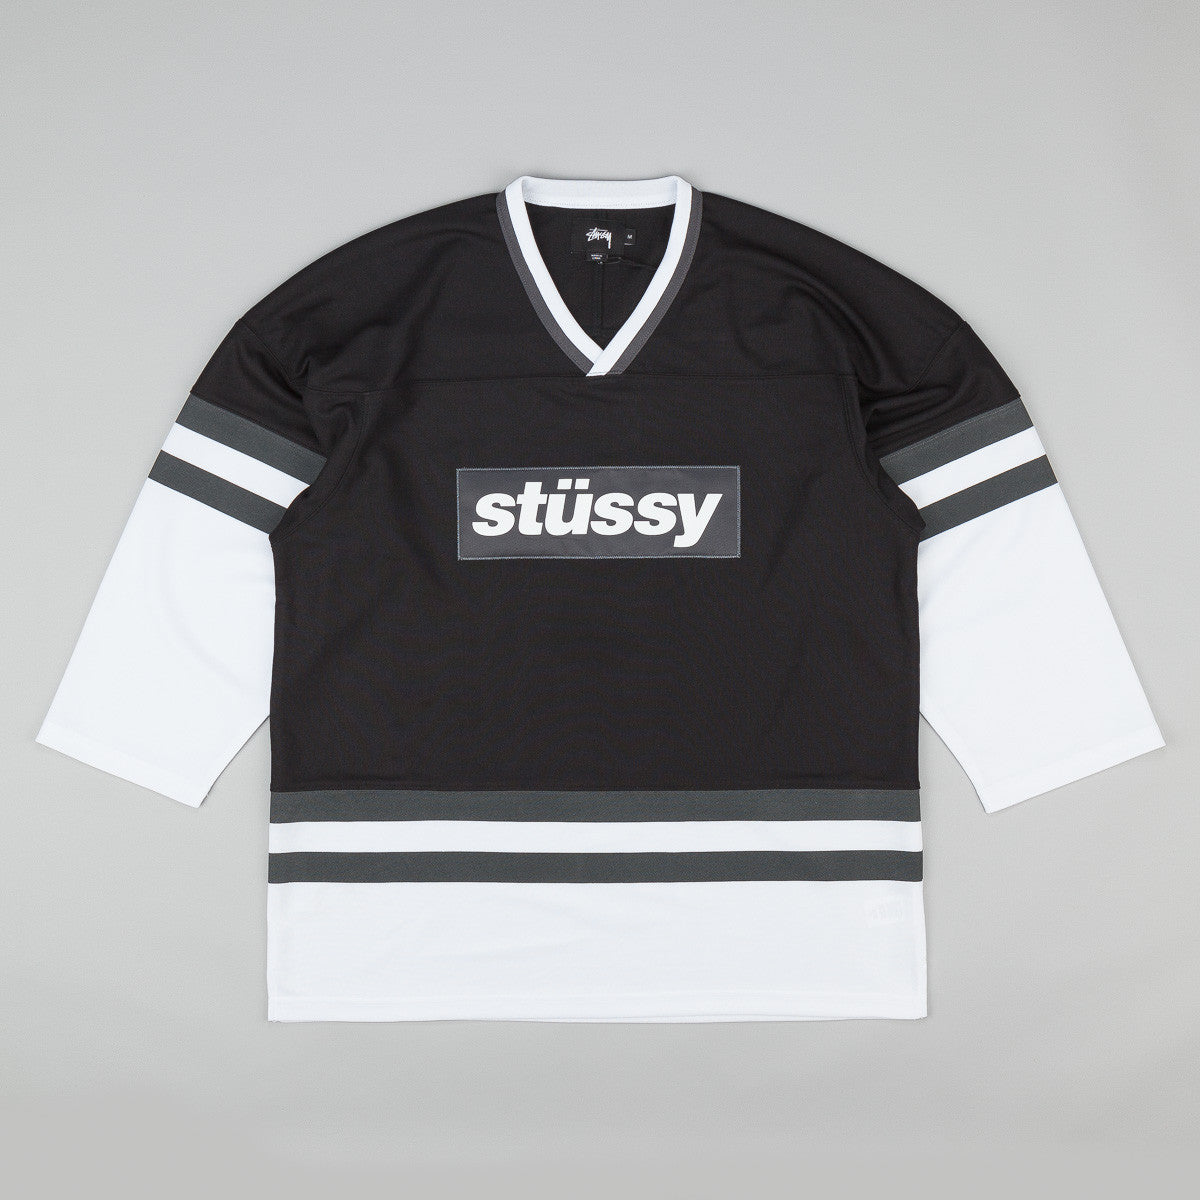 Stussy Block 3/4 Sleeve Hockey Sweatshirt - Black